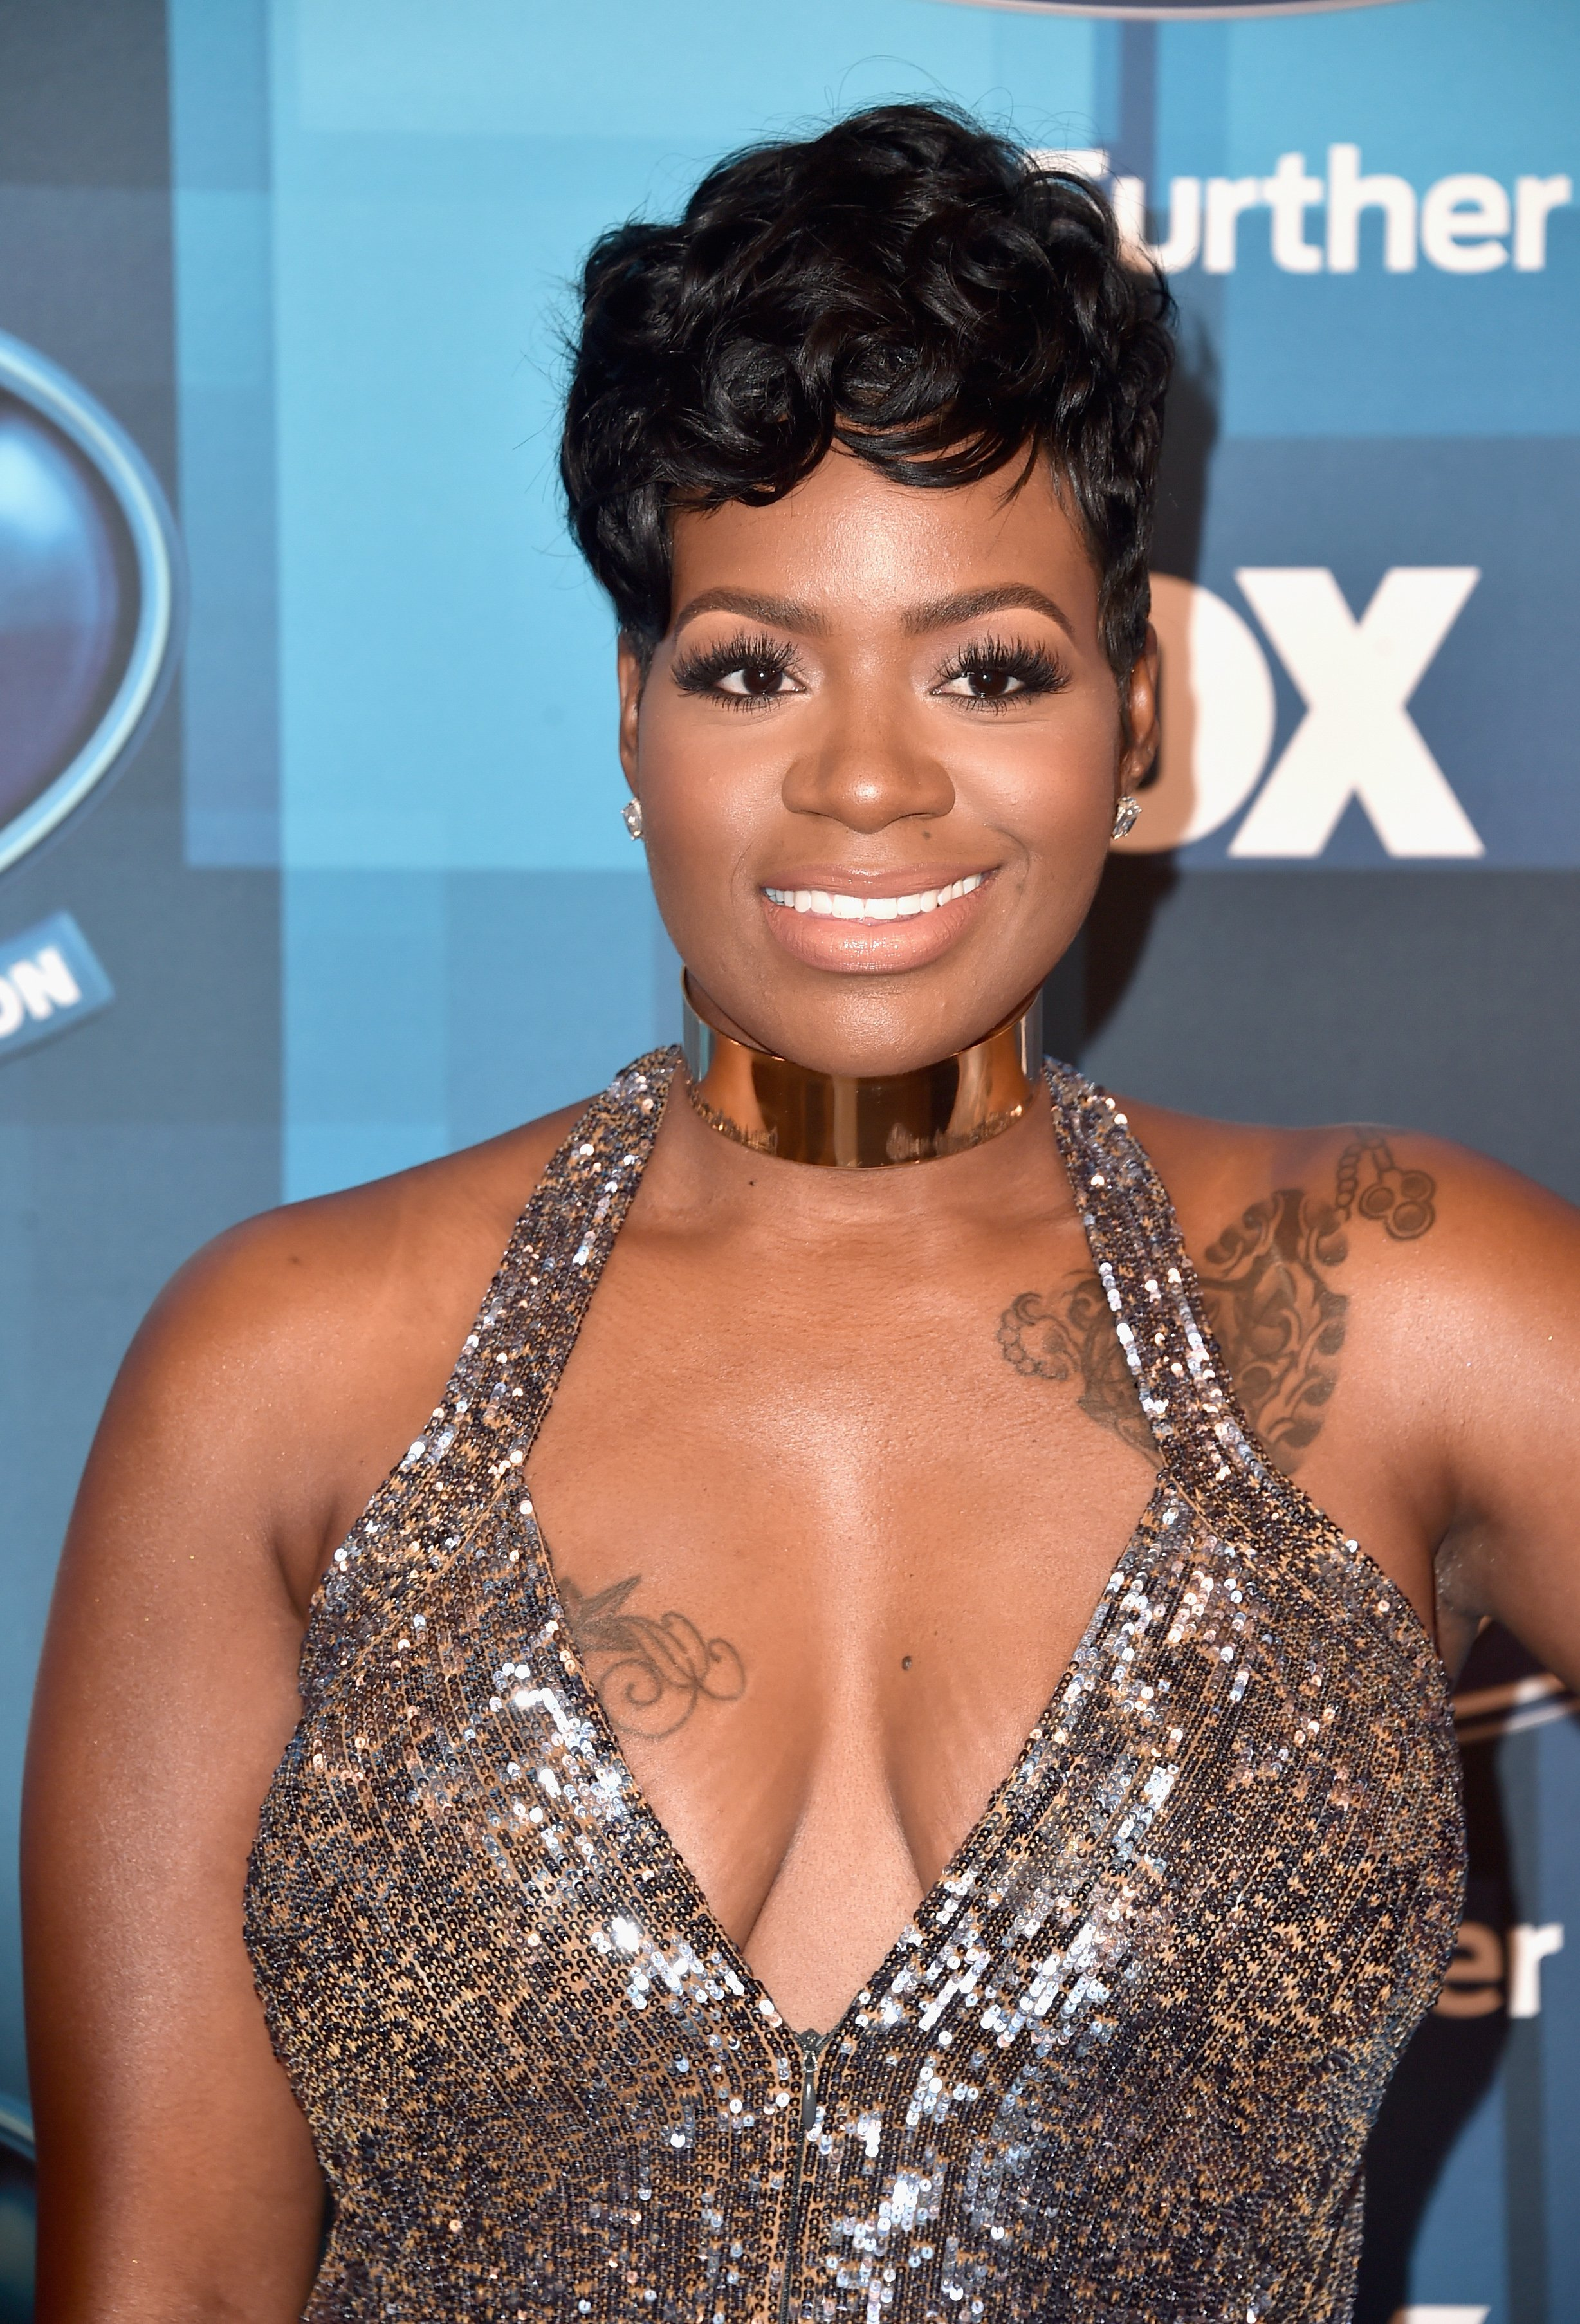 """Fantasia Barrino at the """"American Idol"""" finale on April 7, 2016 in California   Photo: Getty Images"""